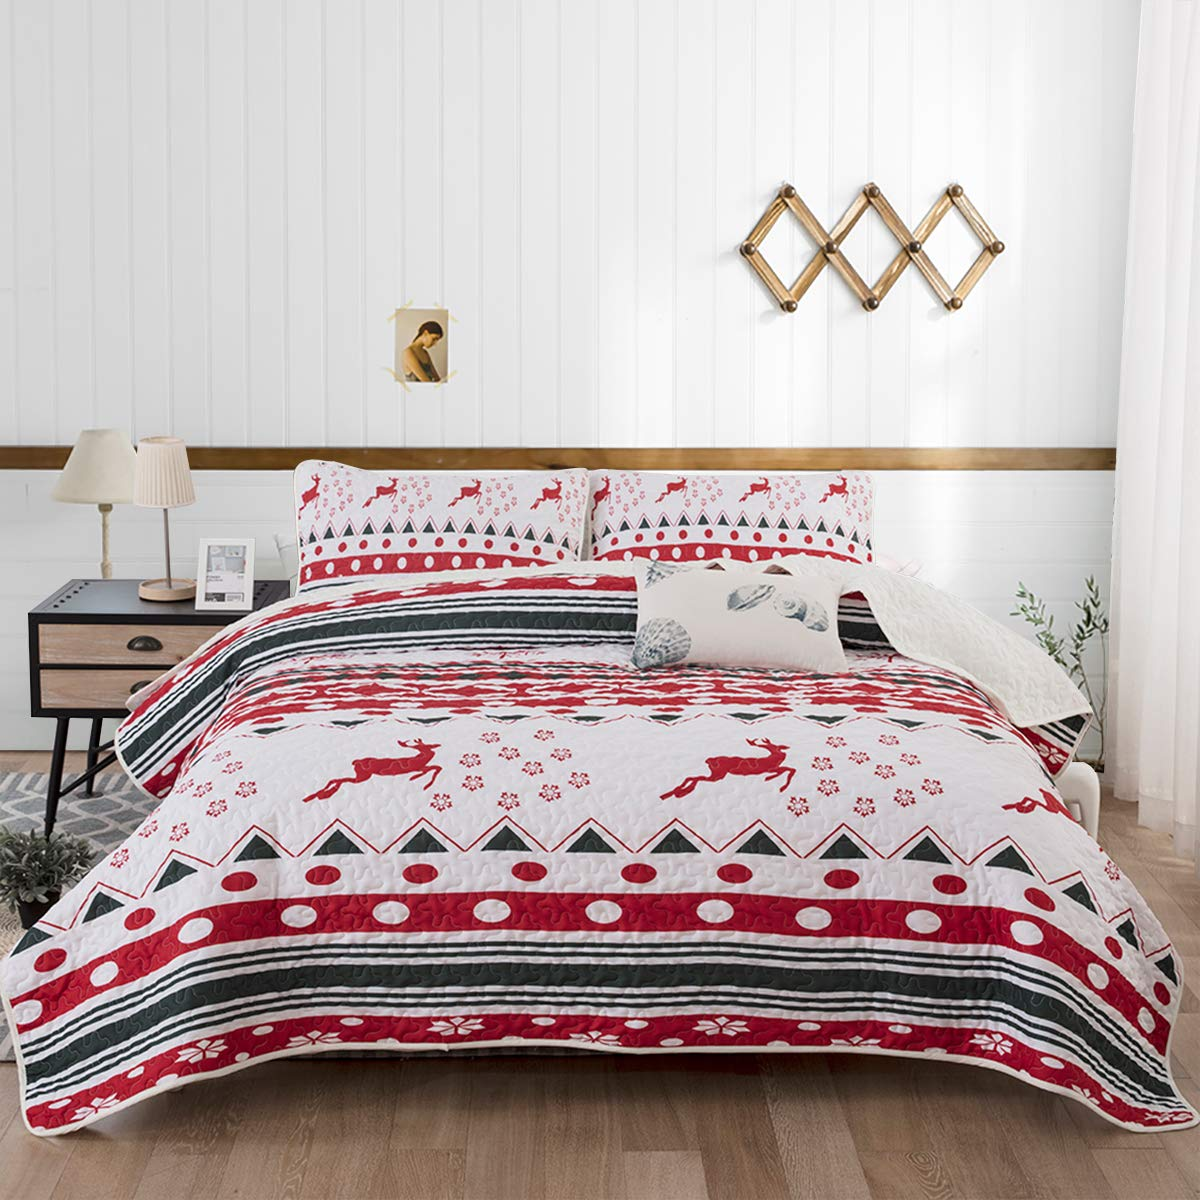 """Deer Reindeer Printed with 2 Pillowcases,Snowflake Coverlet Bed Cover Queen Size 90"""" X 90"""""""